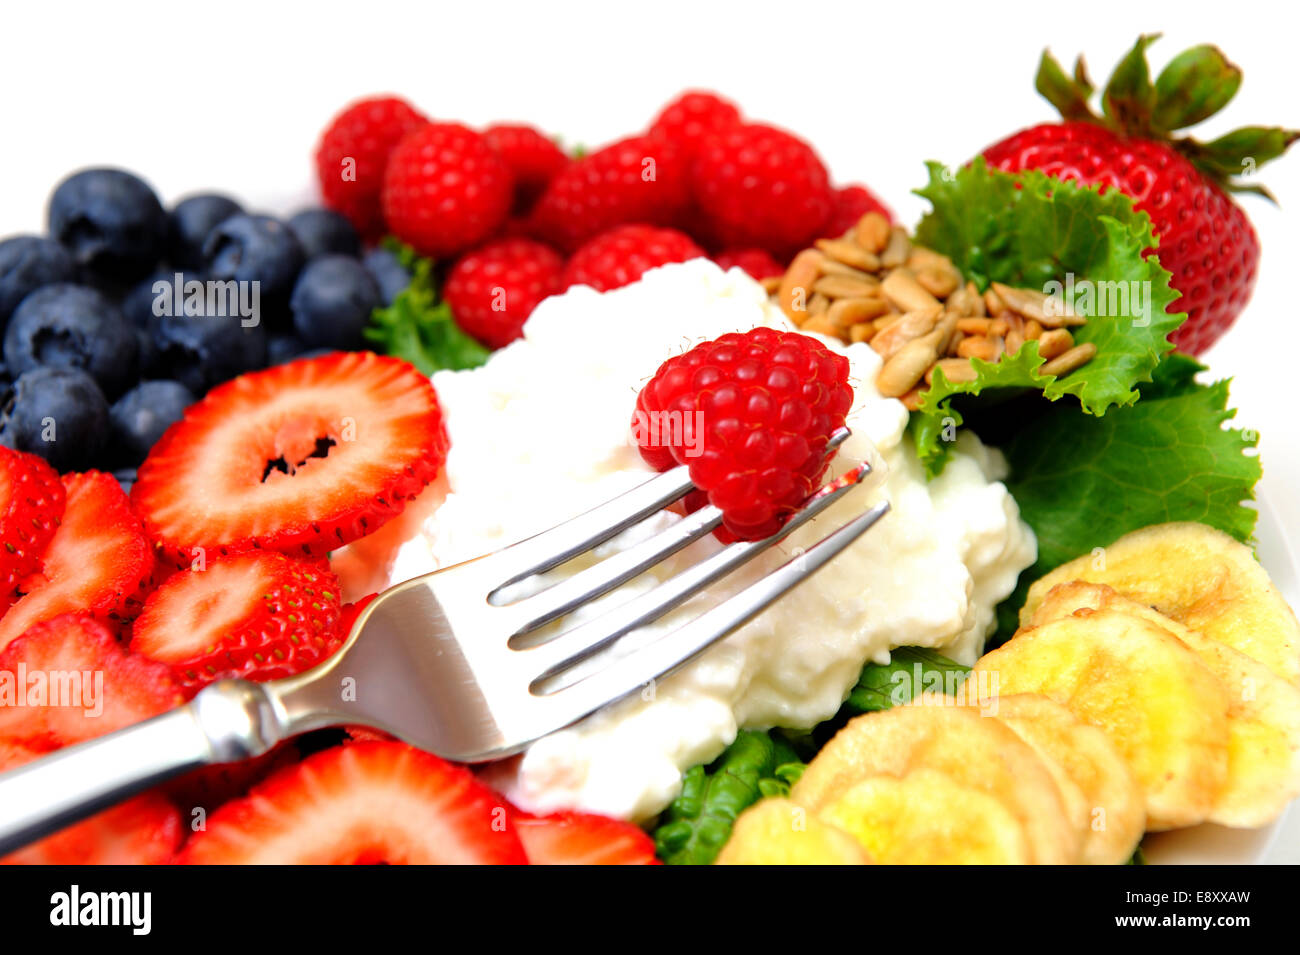 Cottage Cheese And Berries - Stock Image